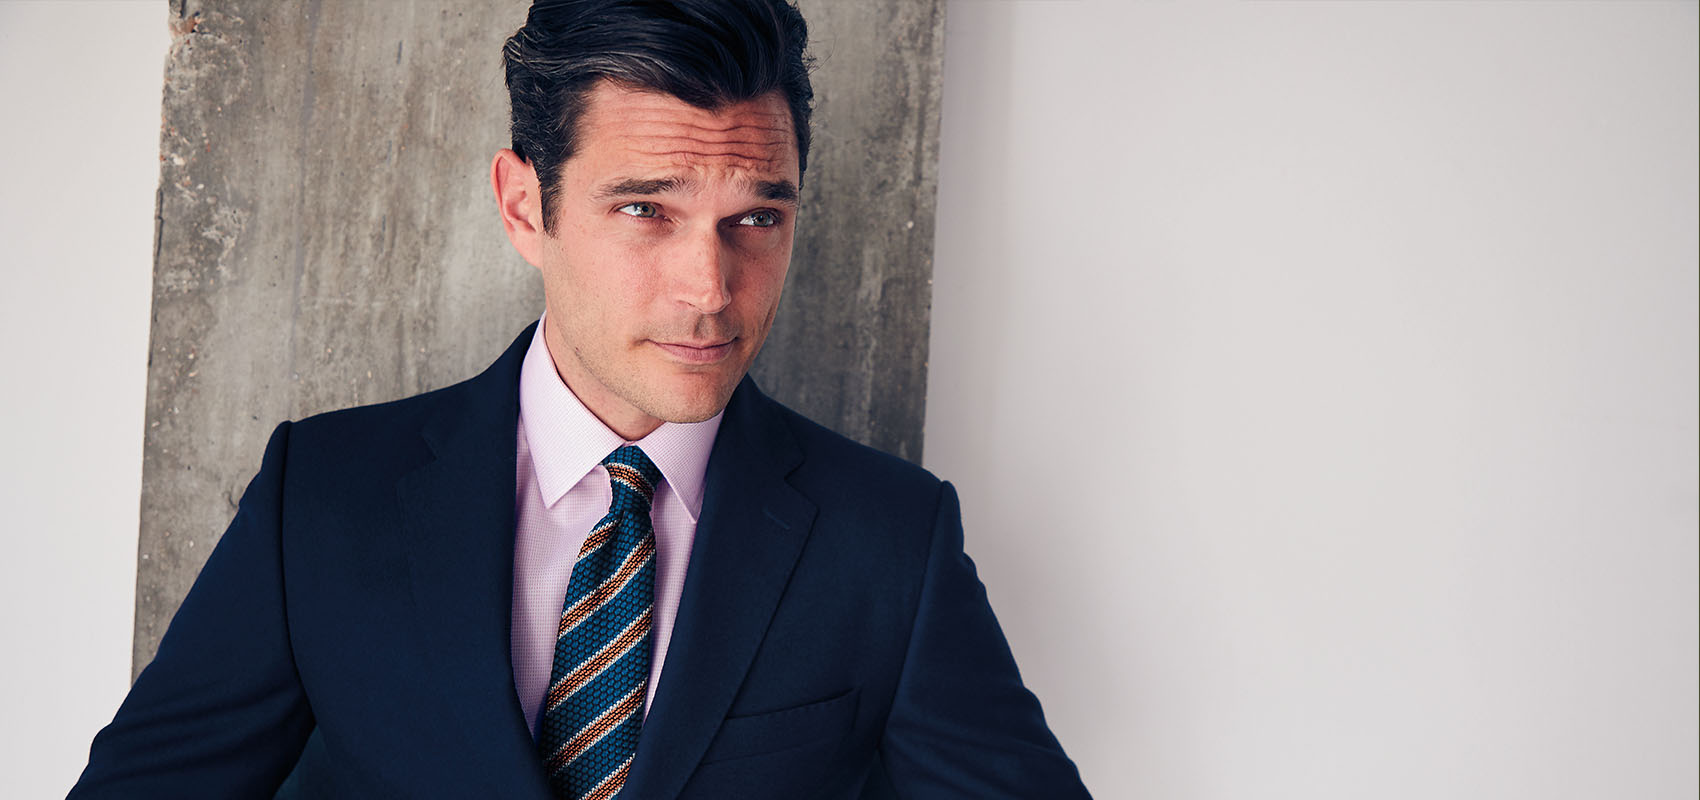 Charles Tyrwhitt Suit Jackets